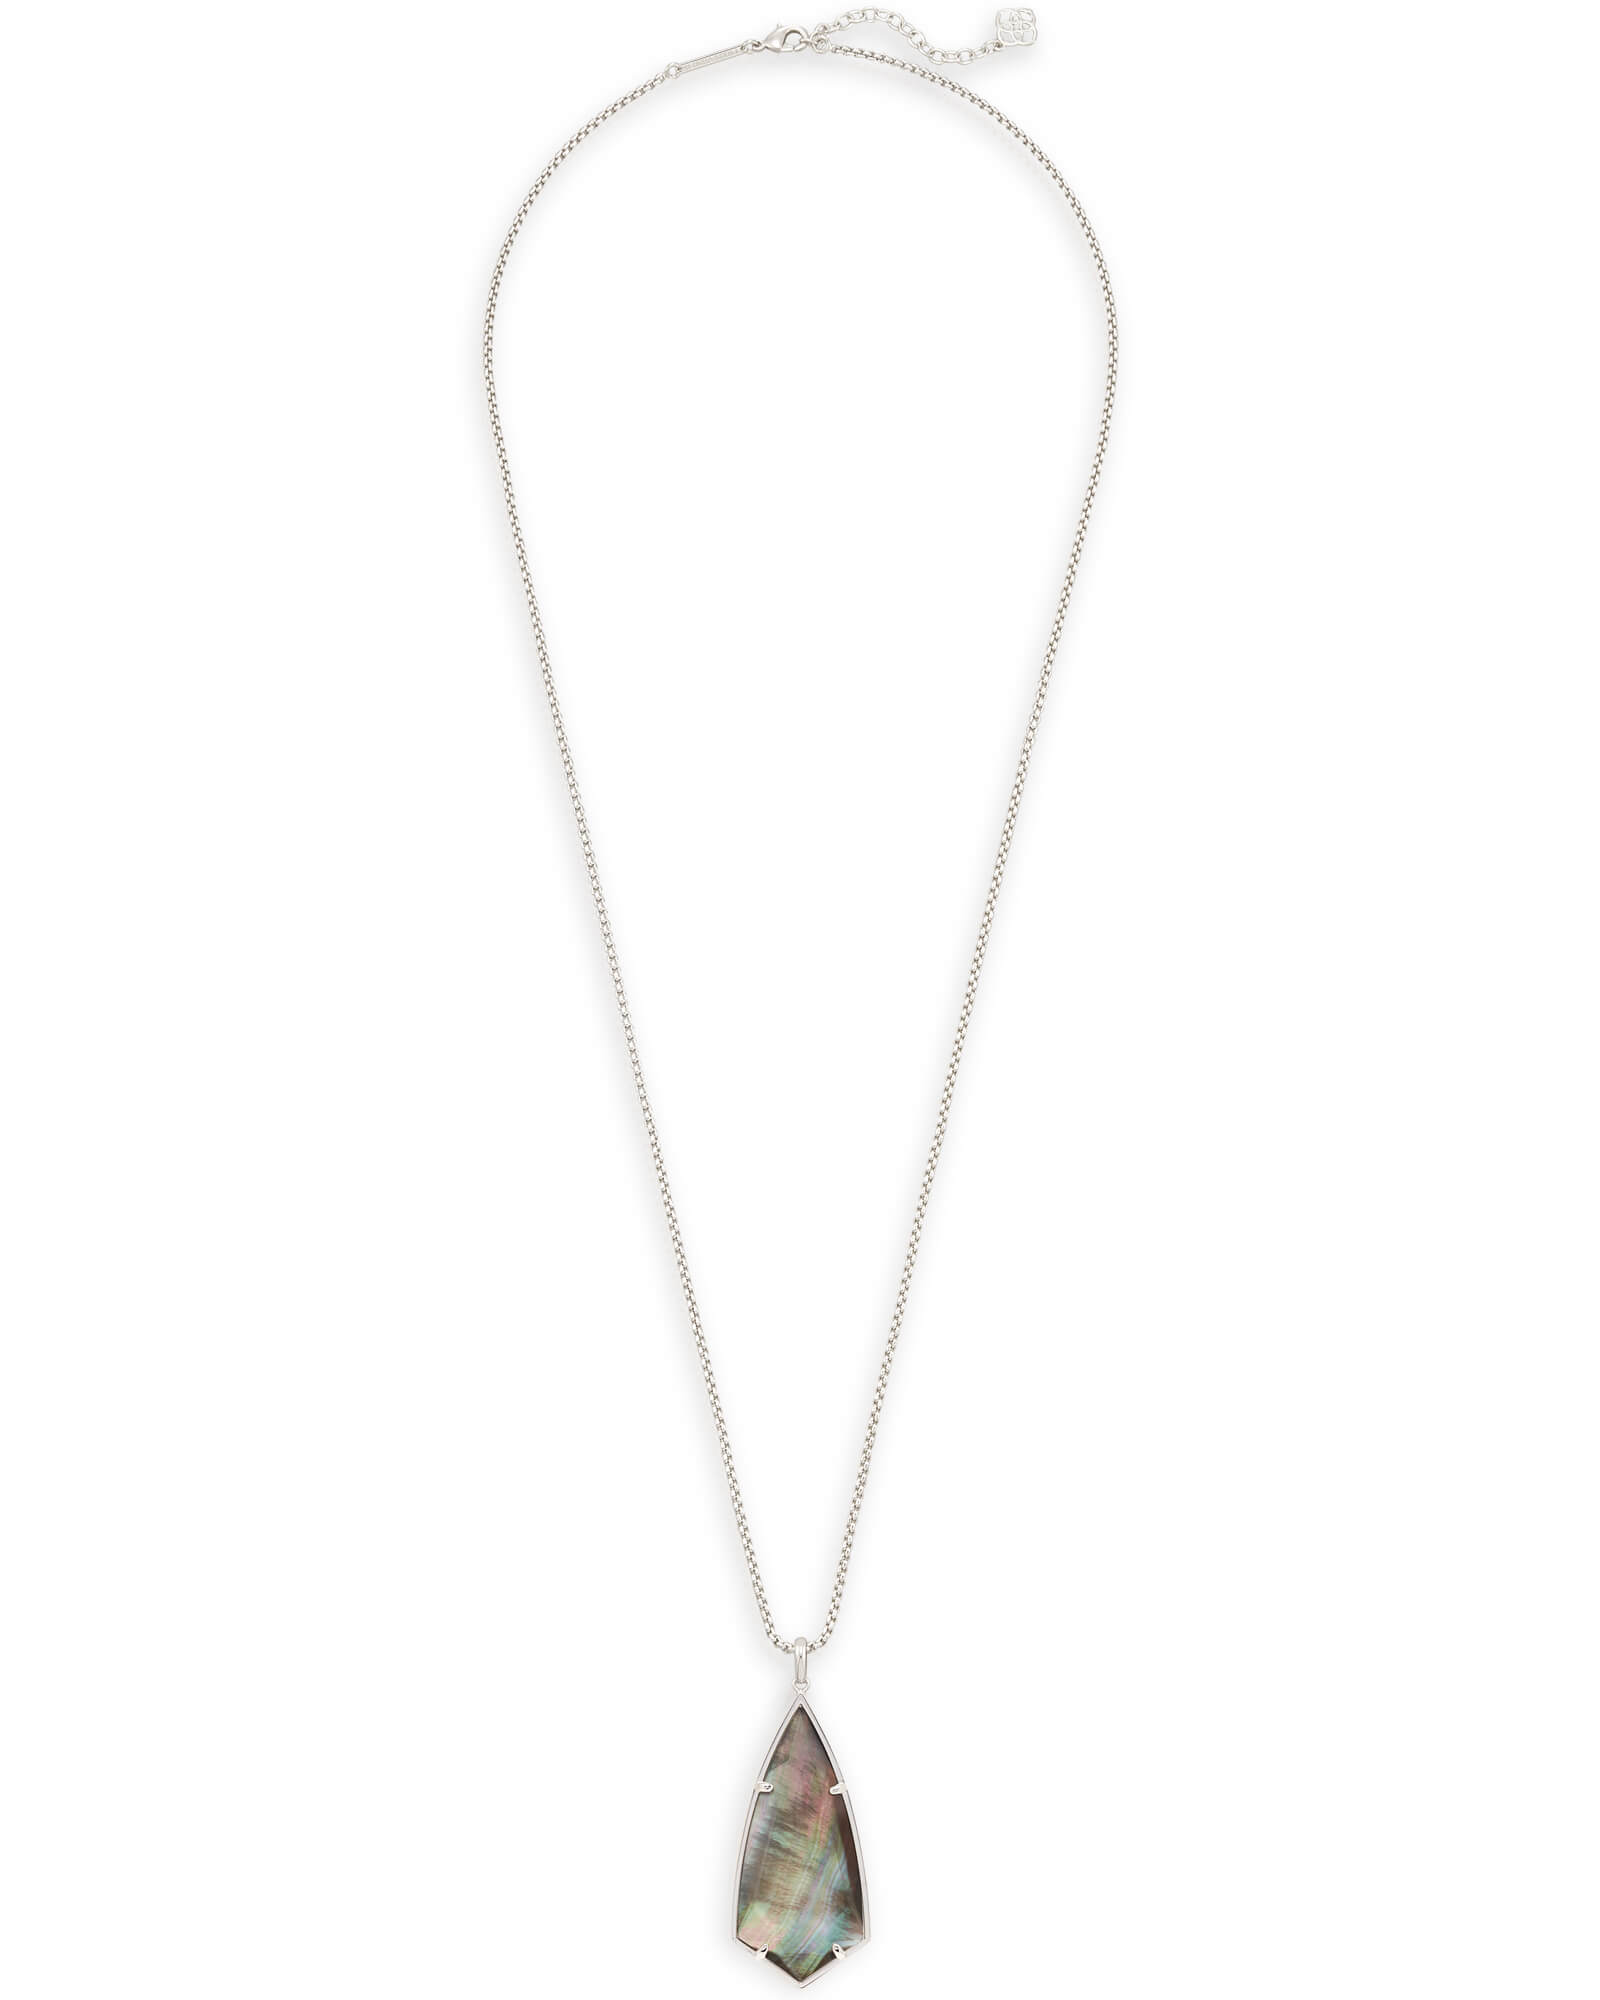 Carole Long Pendant Necklace in Silver